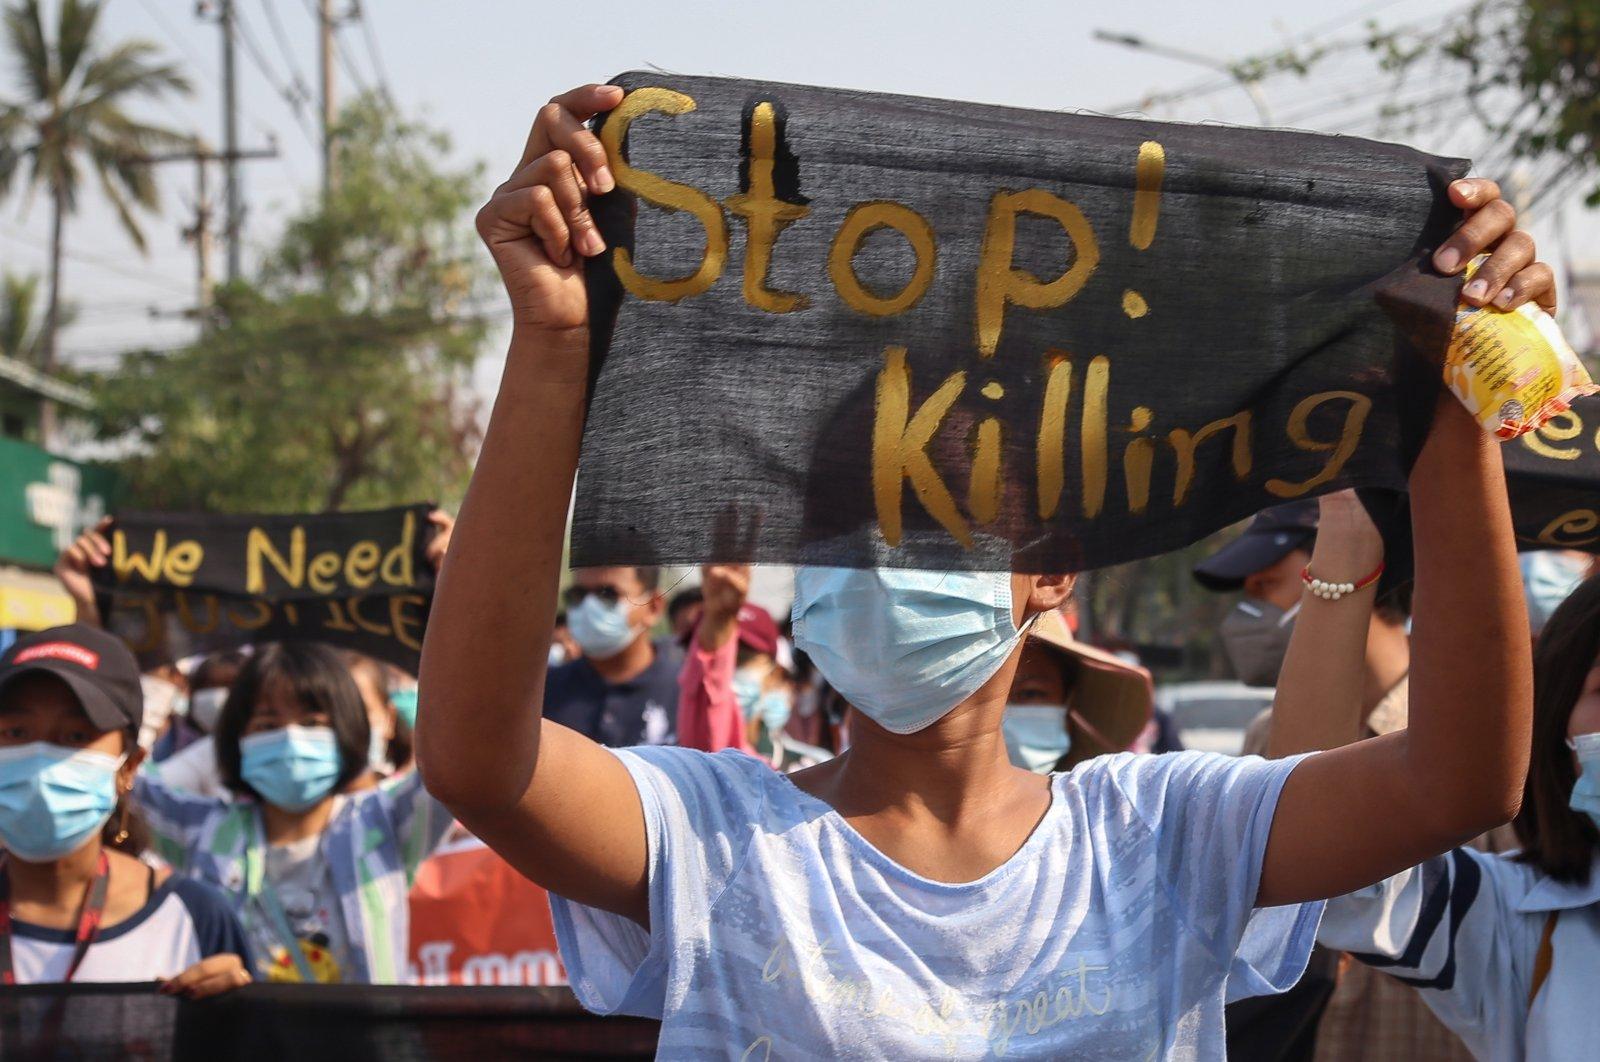 Demonstrators hold banners during an anti-military coup protest in Mandalay, Myanmar, April 11, 2021. (EPA Photo)